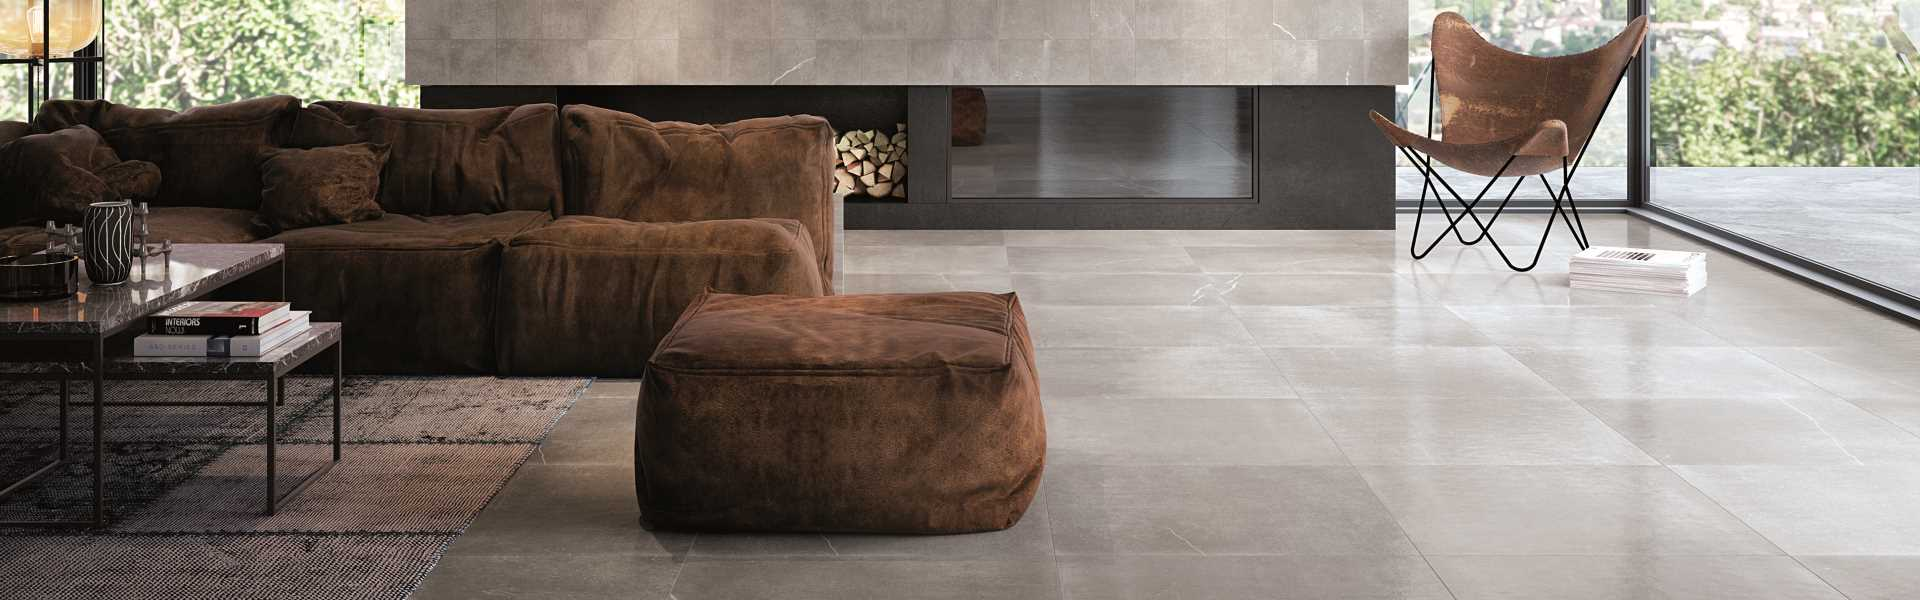 Concrete Ceramic Tiles